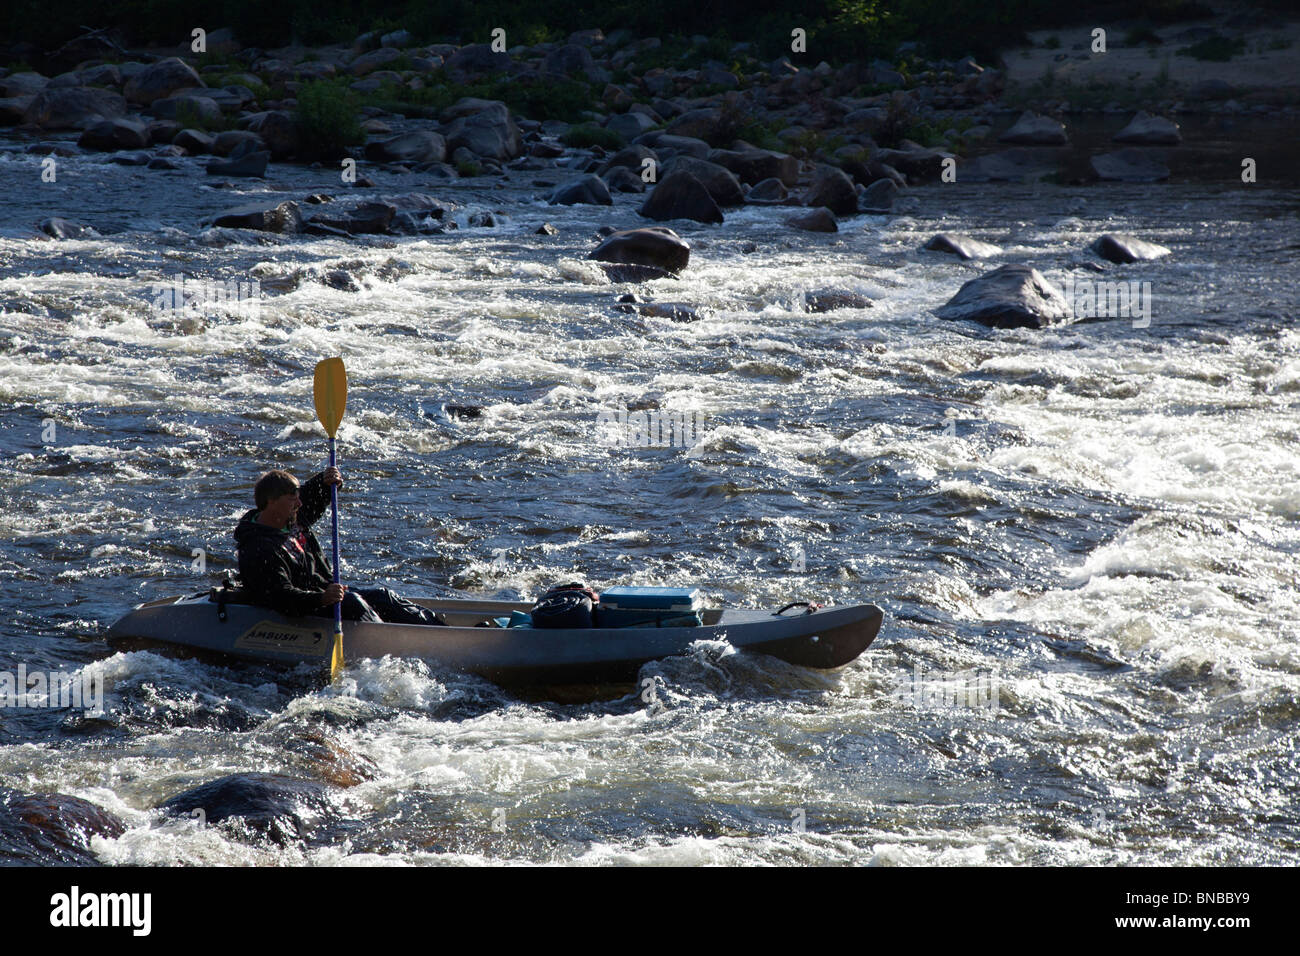 A man paddles a canoe/kayak hybrid through rapids in the early morning on the Pemigewasset River - Stock Image